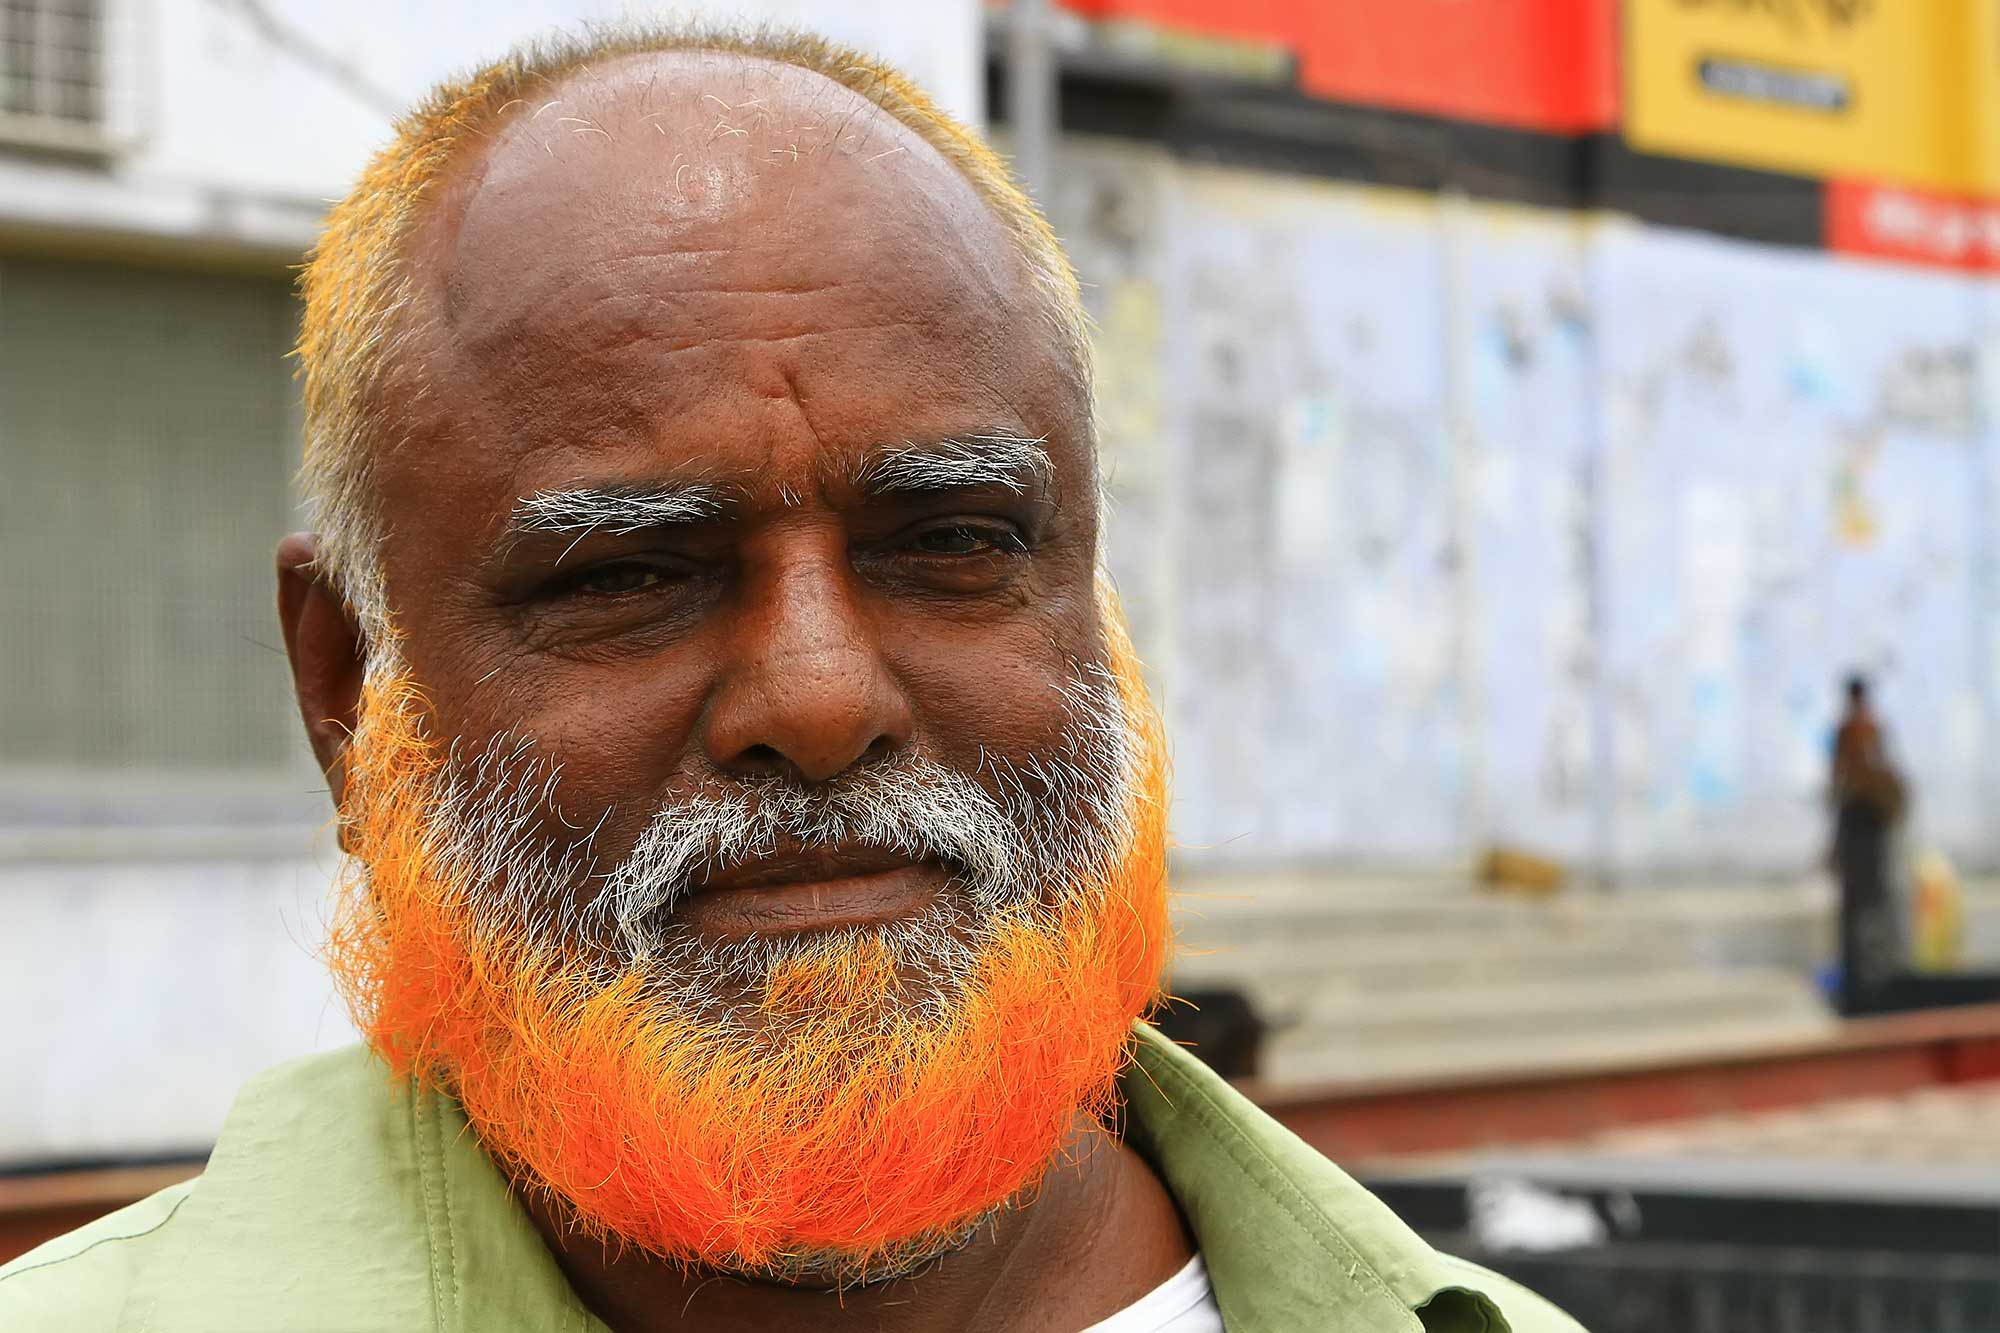 man-orange-beard-khulna-port-bangladesh